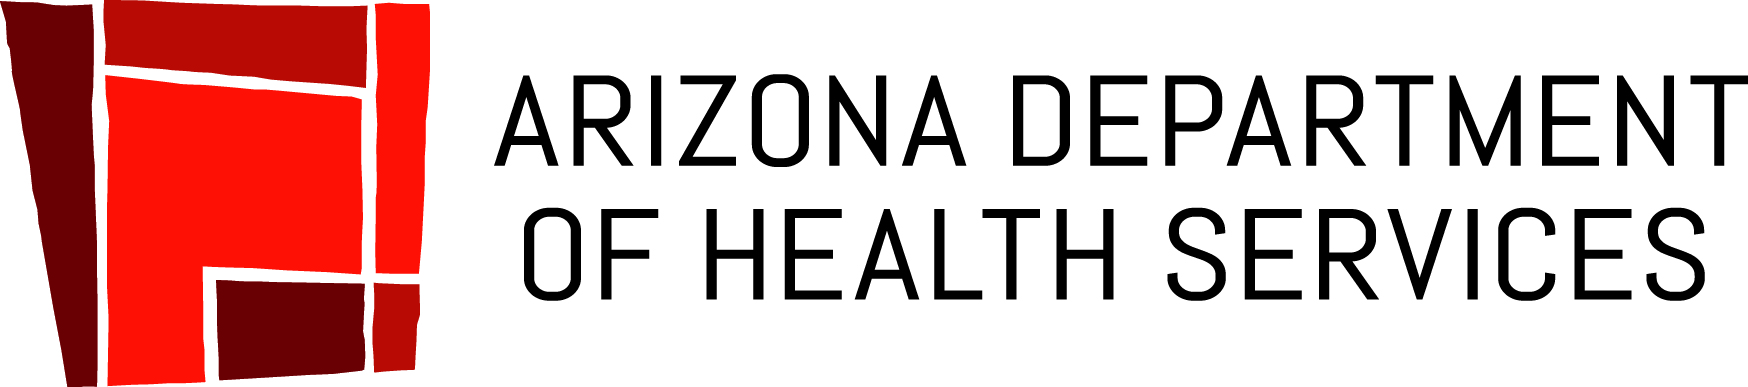 Full color logo for the Arizona Department of Health Services